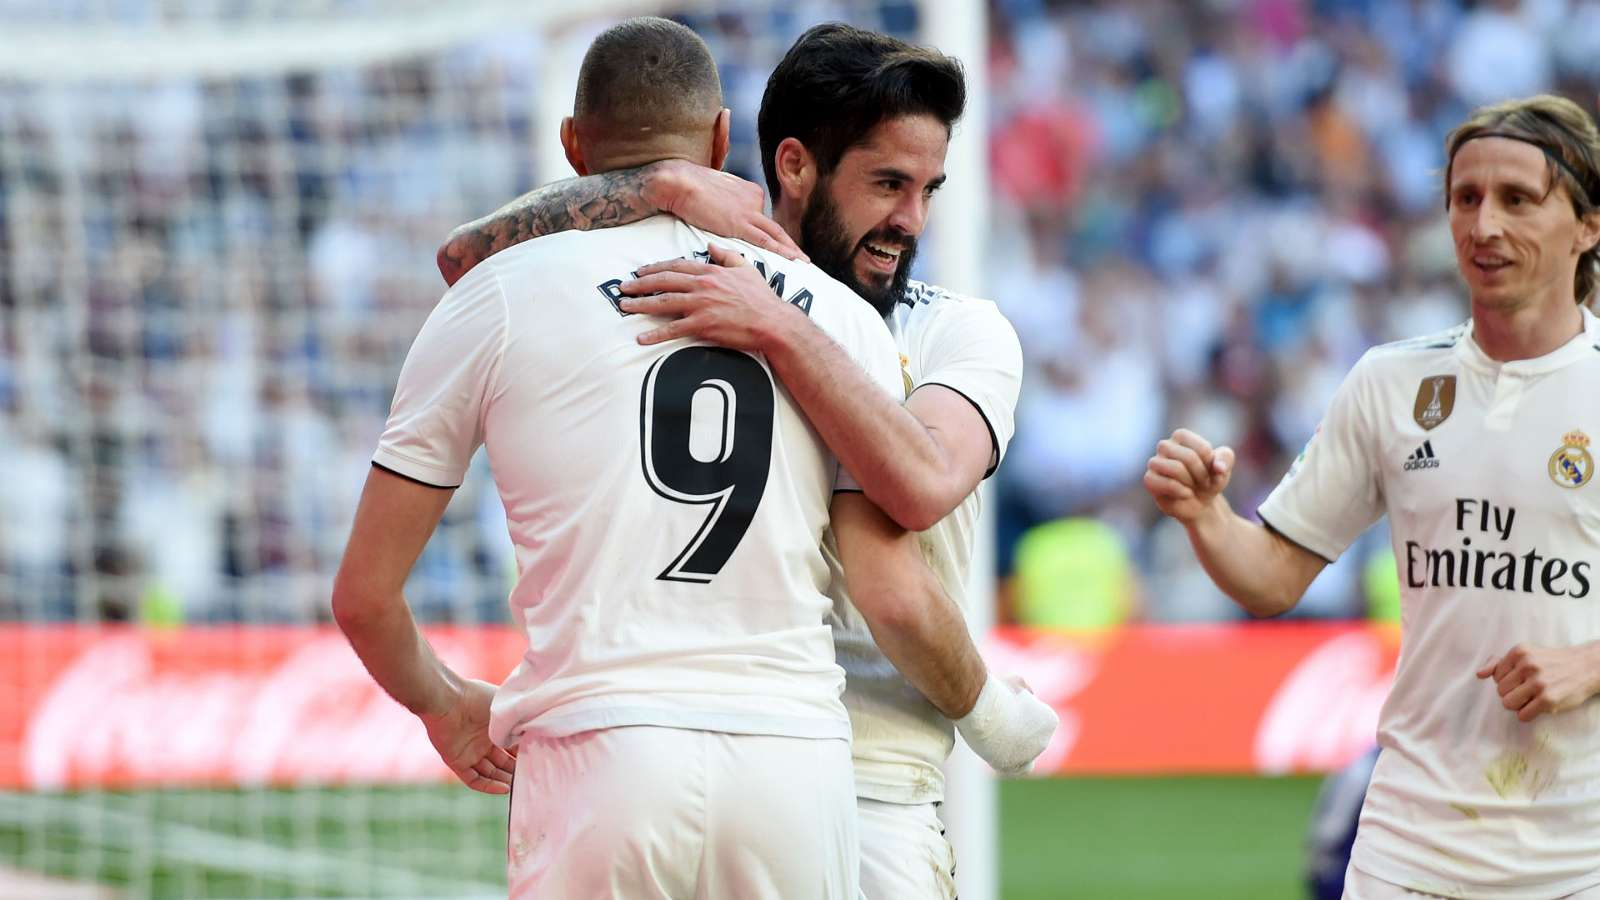 benz cropped 111z3ri1032cp12s9f2gi6w3w3 - Real Madrid defeats Eibar 2-1: LaLiga Highlights [Video]